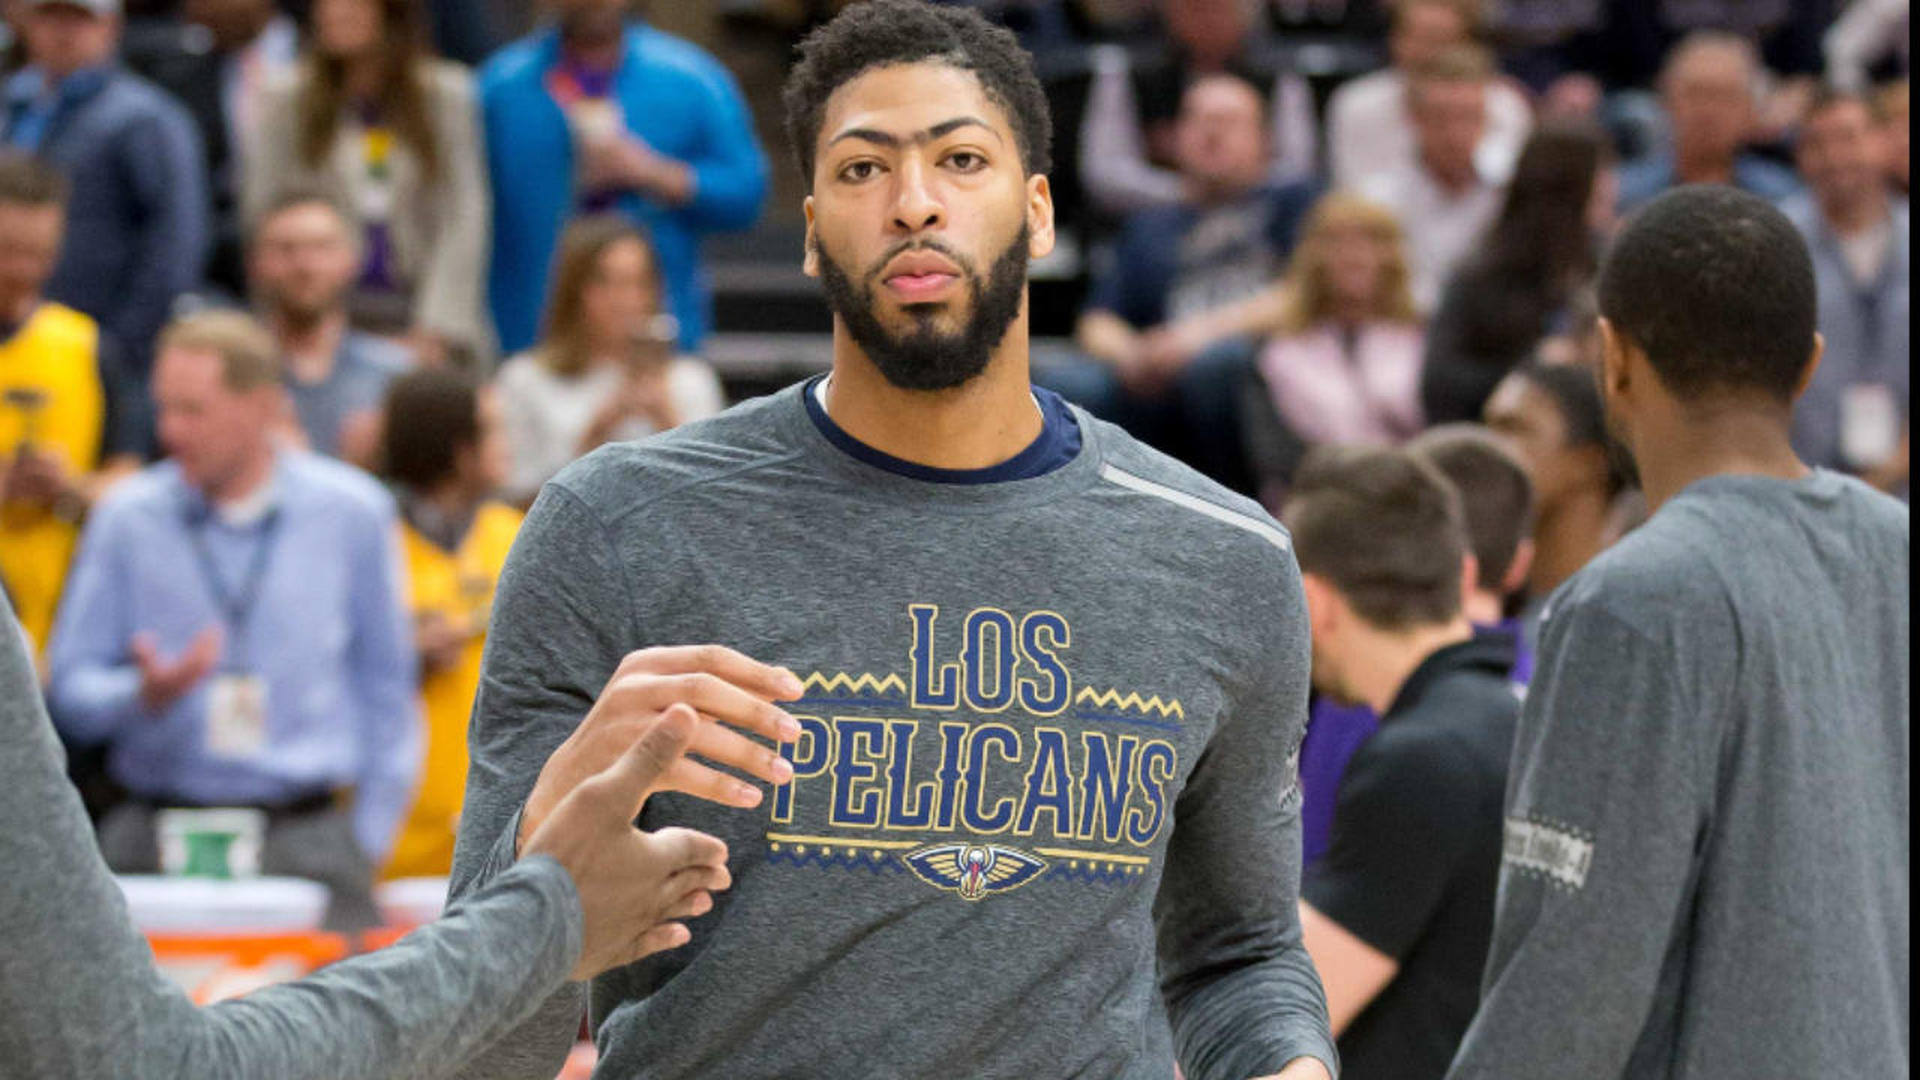 Lakers' Anthony Davis trade shakes up NBA's power structure, and the deal's impact will be felt league-wide